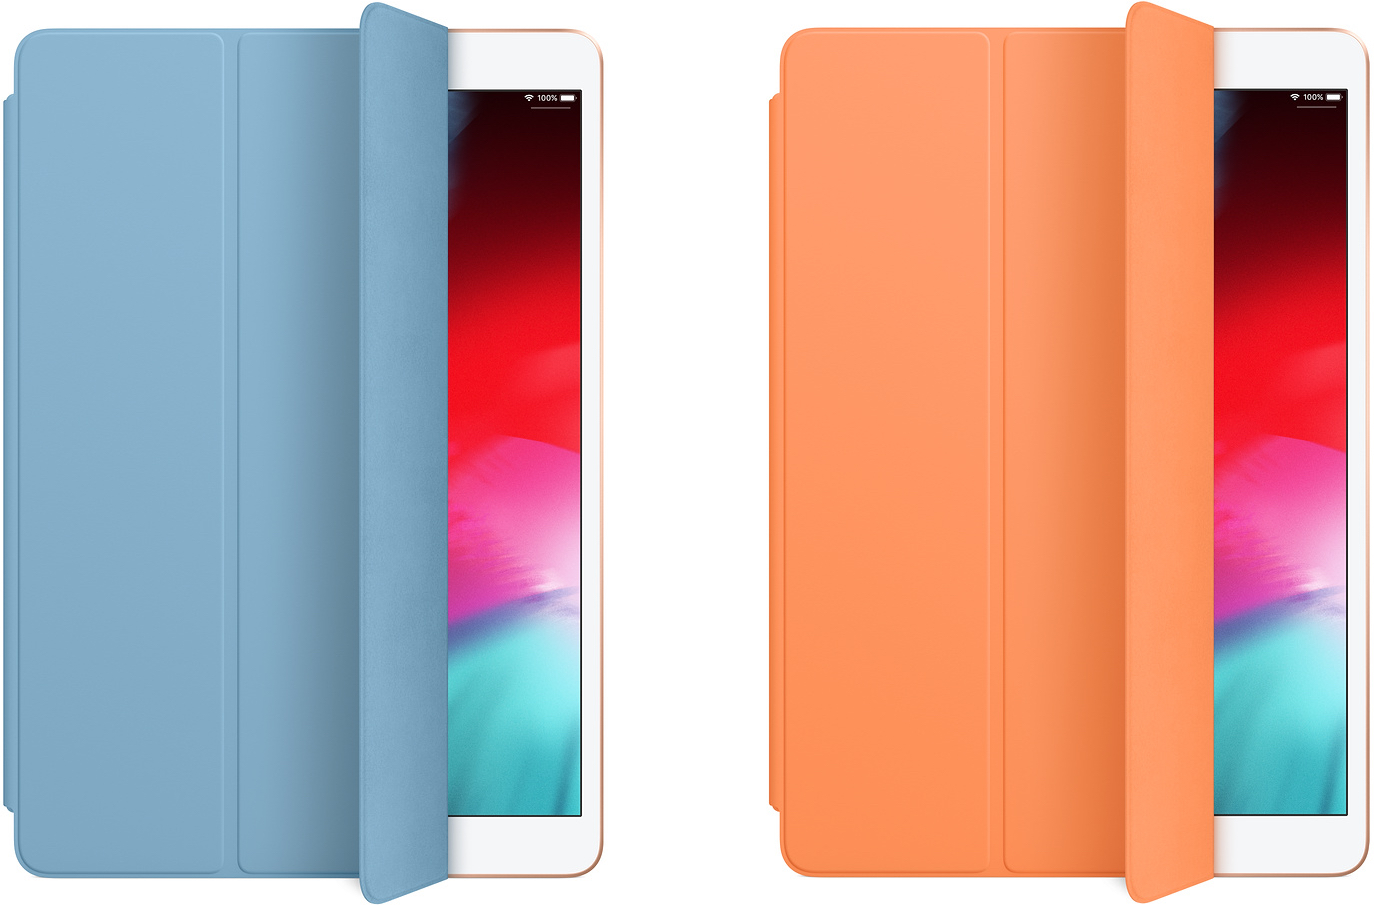 Novas cores de Smart Covers para iPad mini e iPad Air